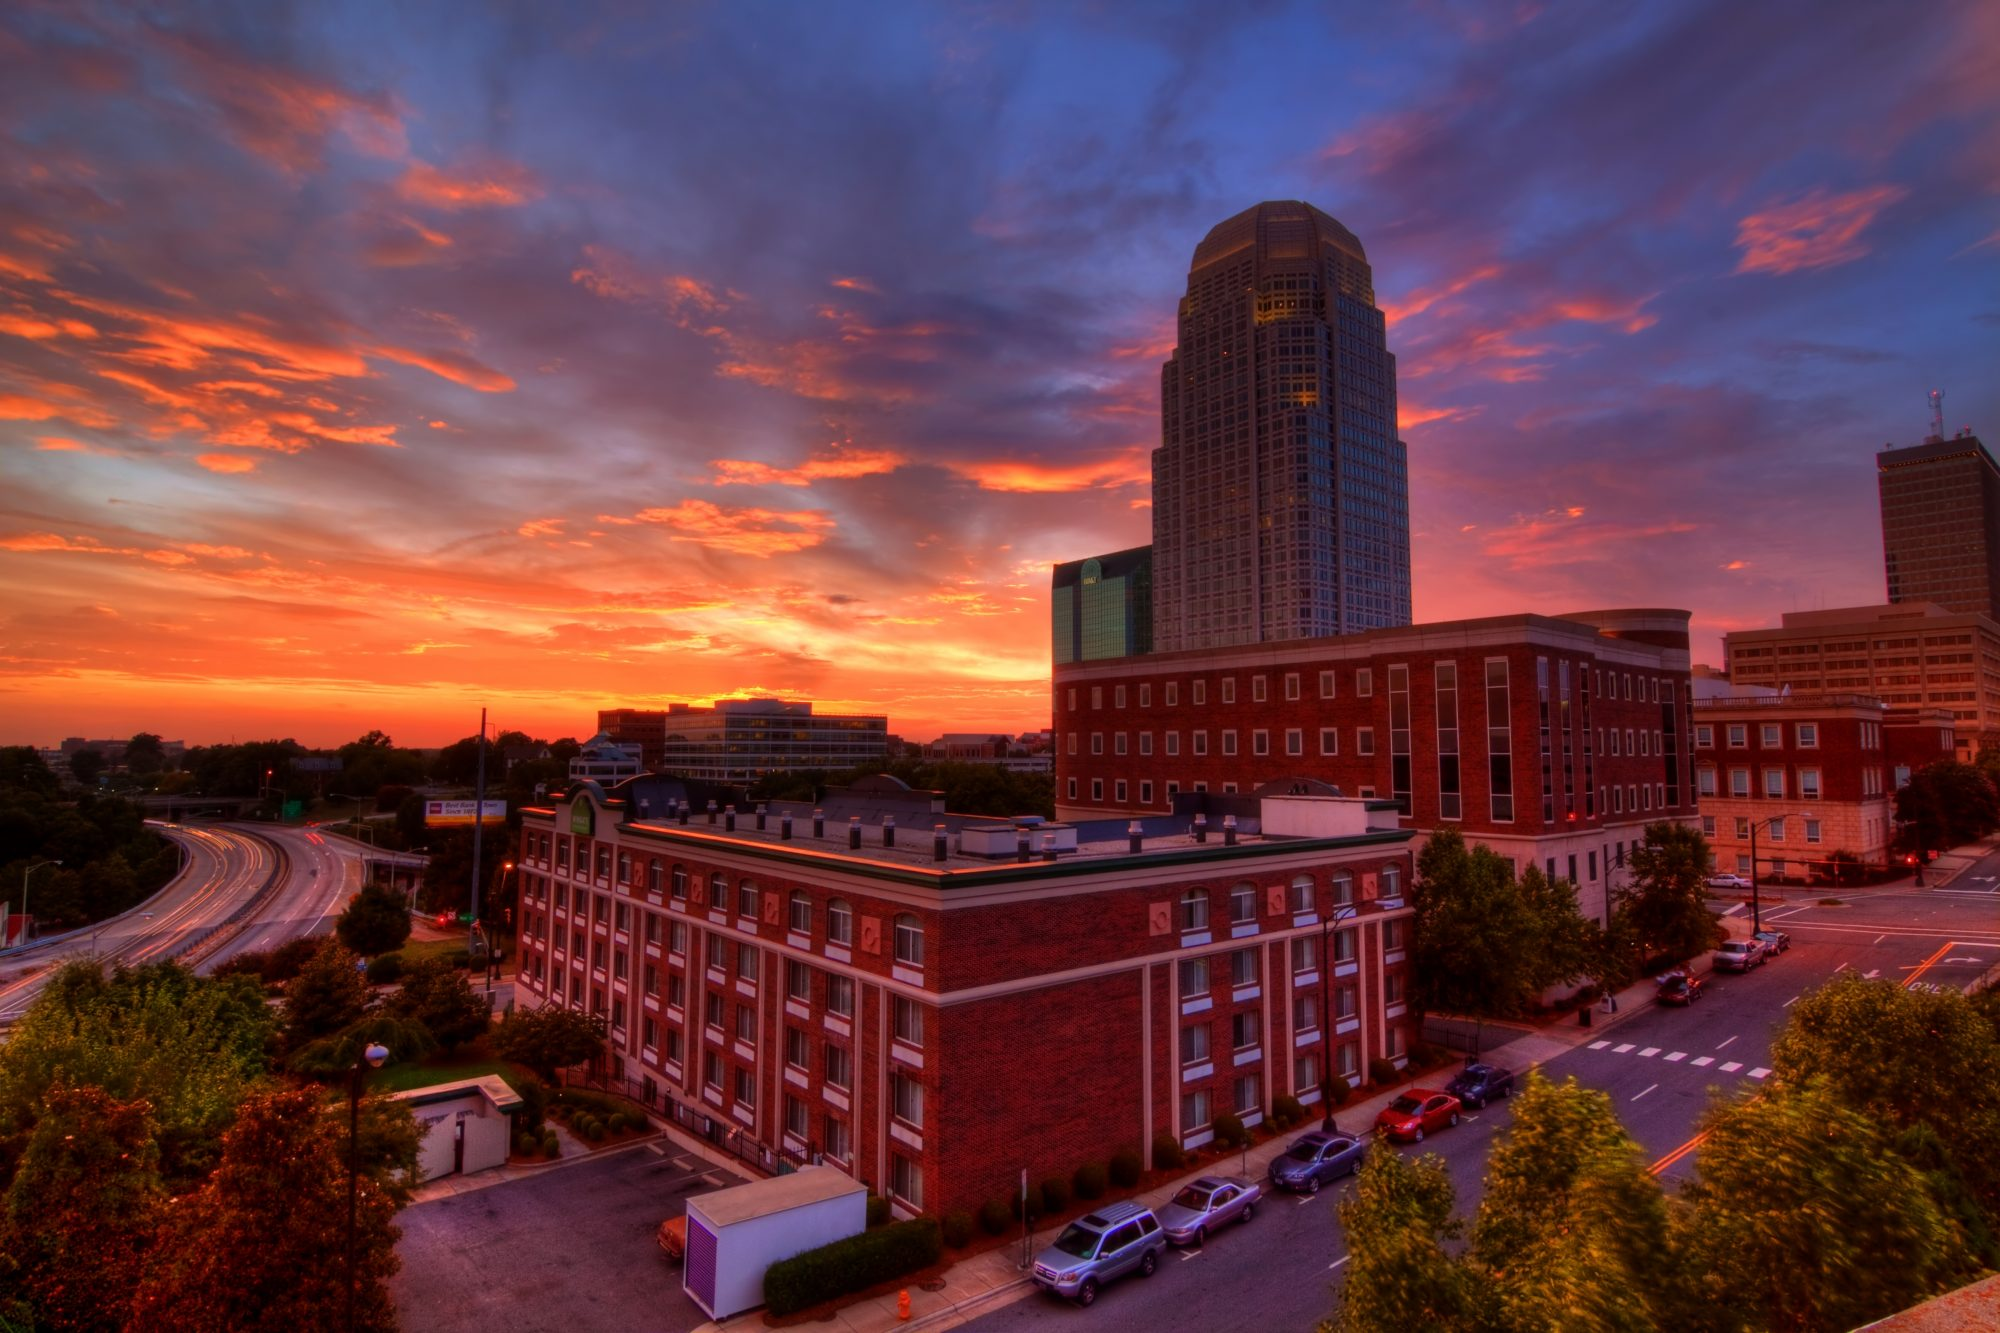 Downtown Winston Salem, NC at Sunset